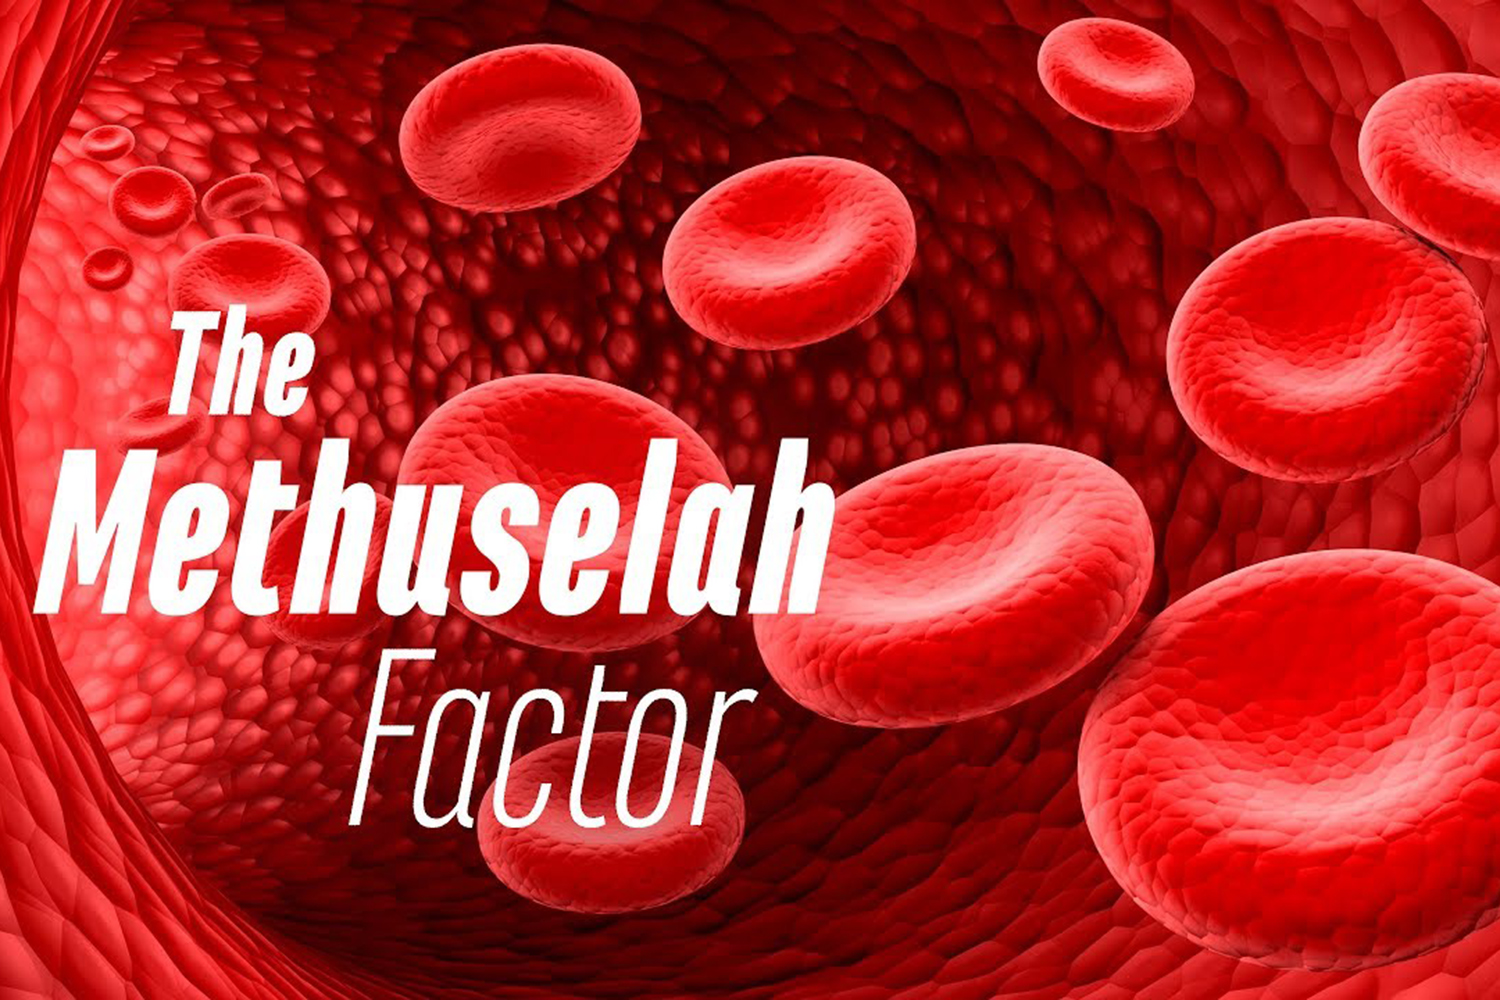 The Methuselah Factor with Dr. David DeRose